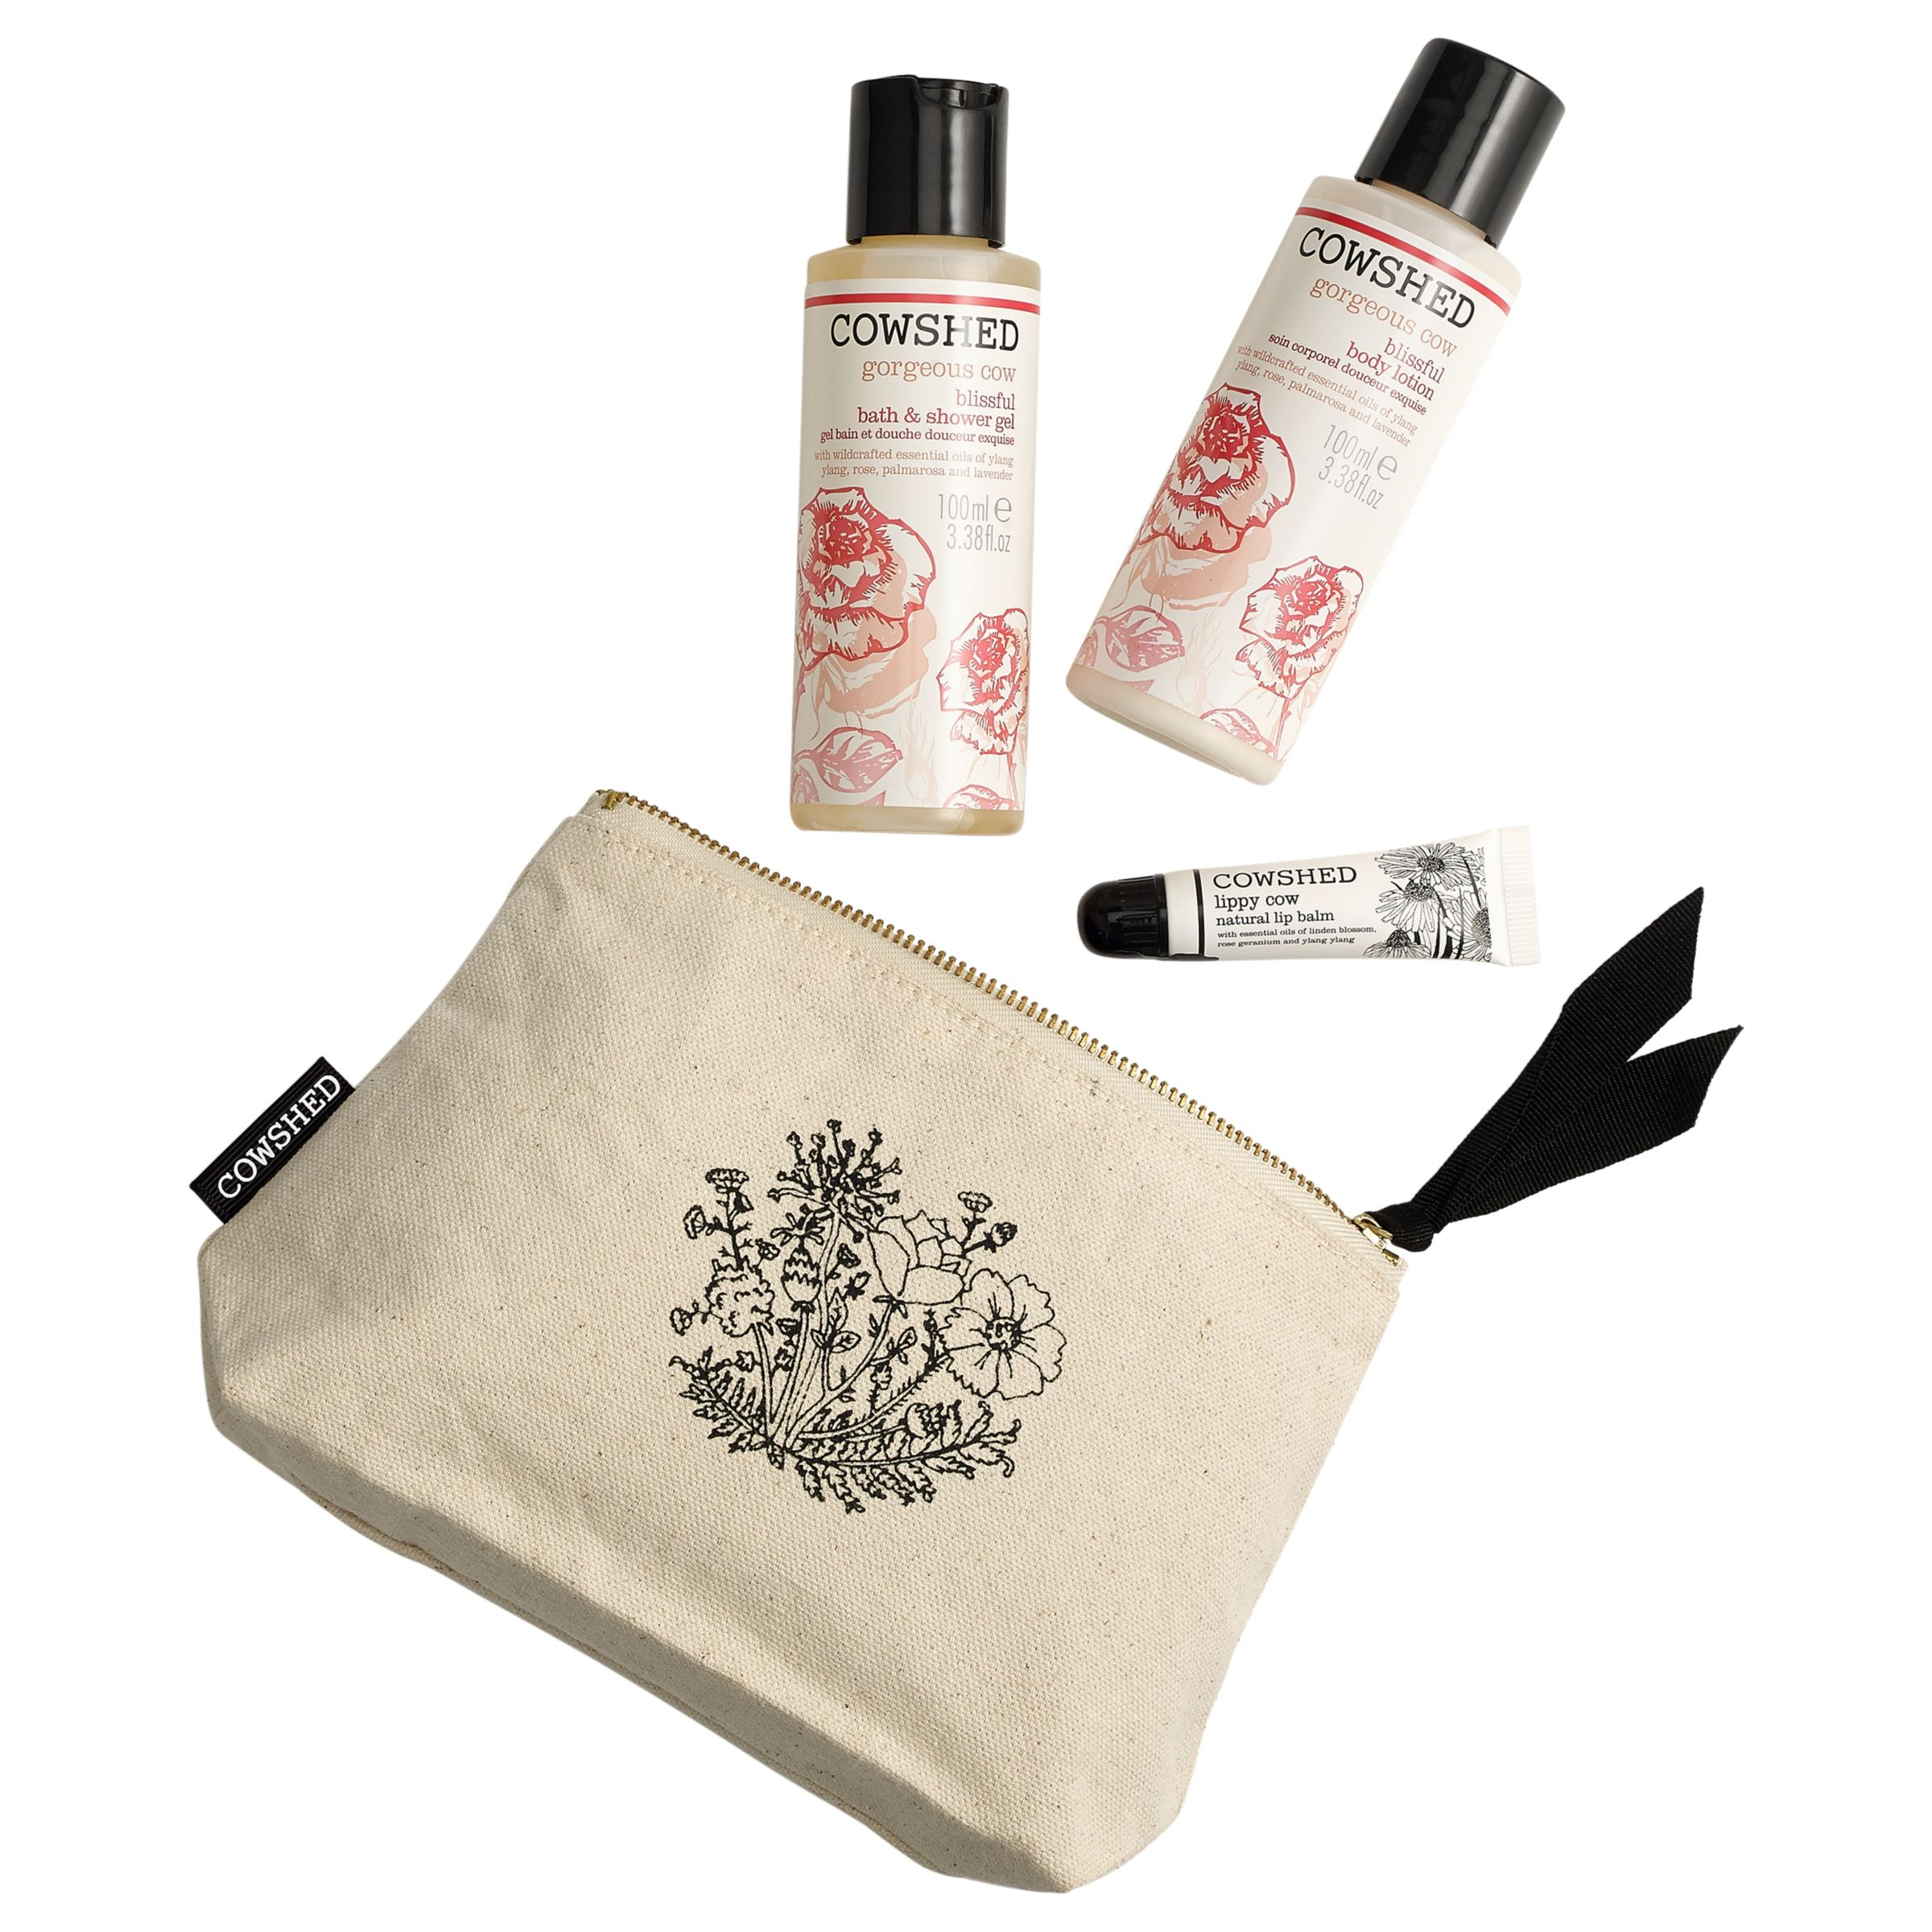 Cowshed Cowshed Gorgeous Essentials Natural Bag Gift Set